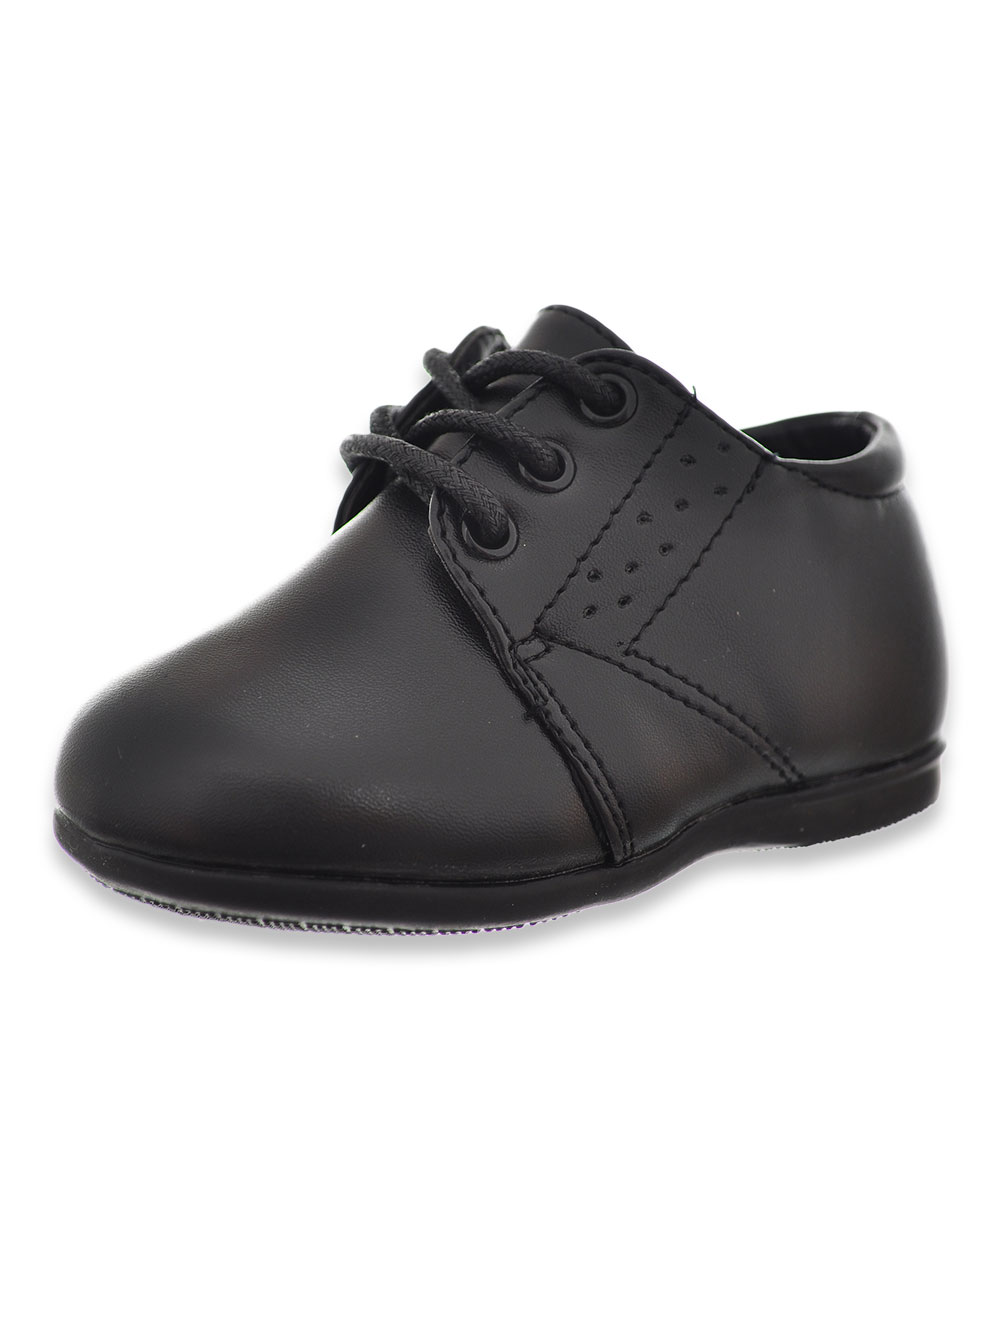 Size 5 Infant Dress Shoes for Boys